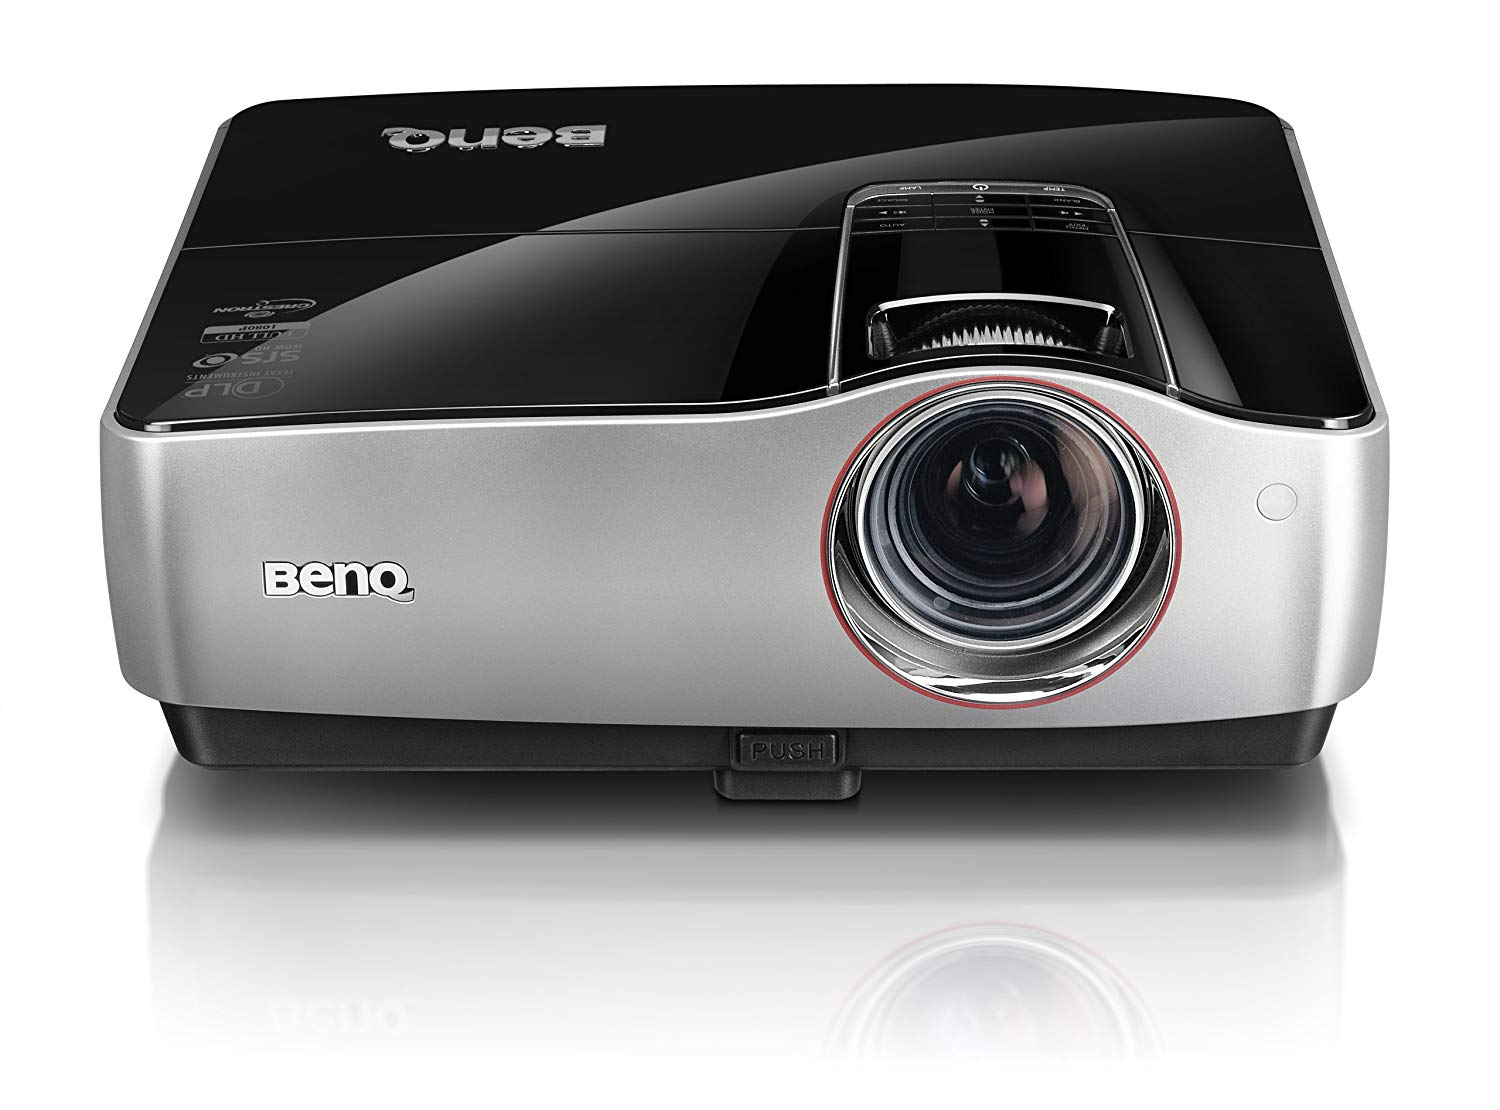 BenQ SH910 Cinema Class HD DLP Projector